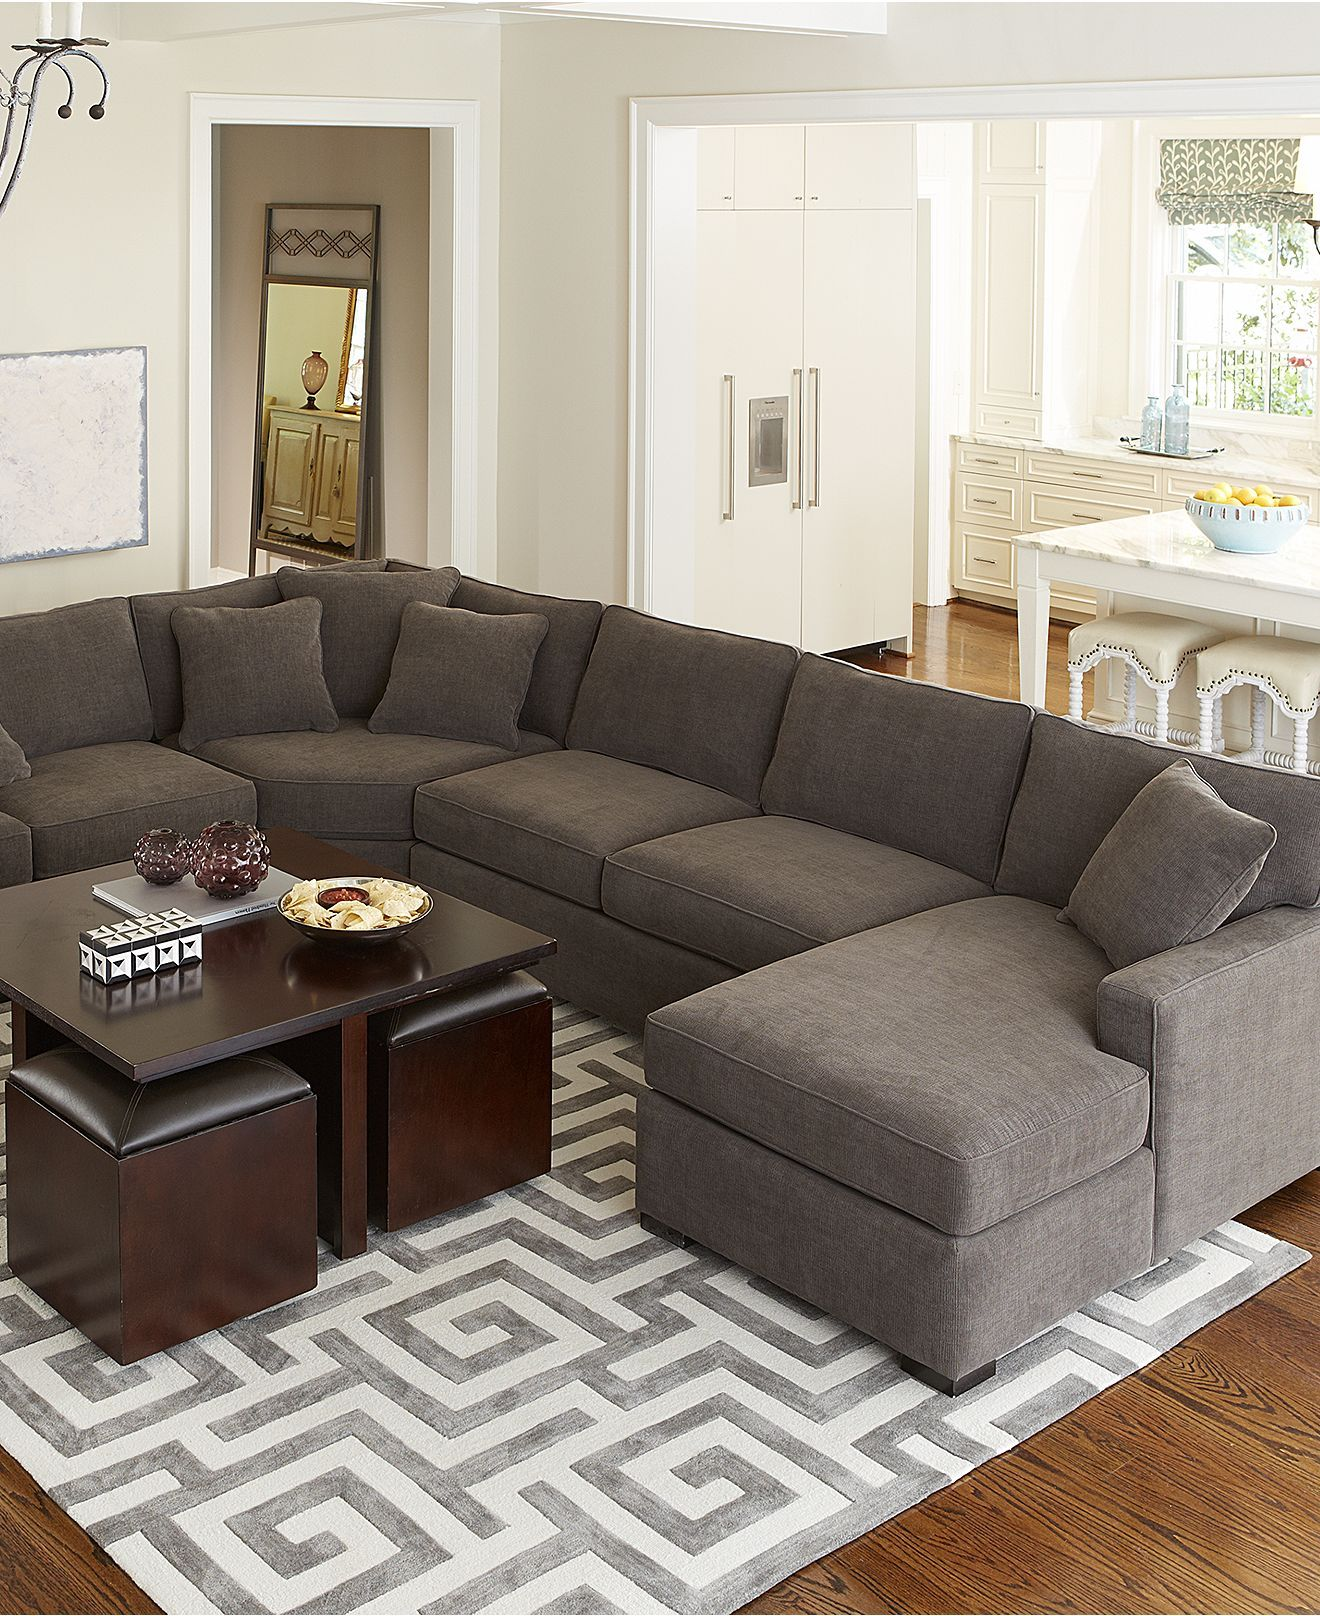 HomeBelle Chocolate Leather Living Room Furniture Set | Beautiful ...